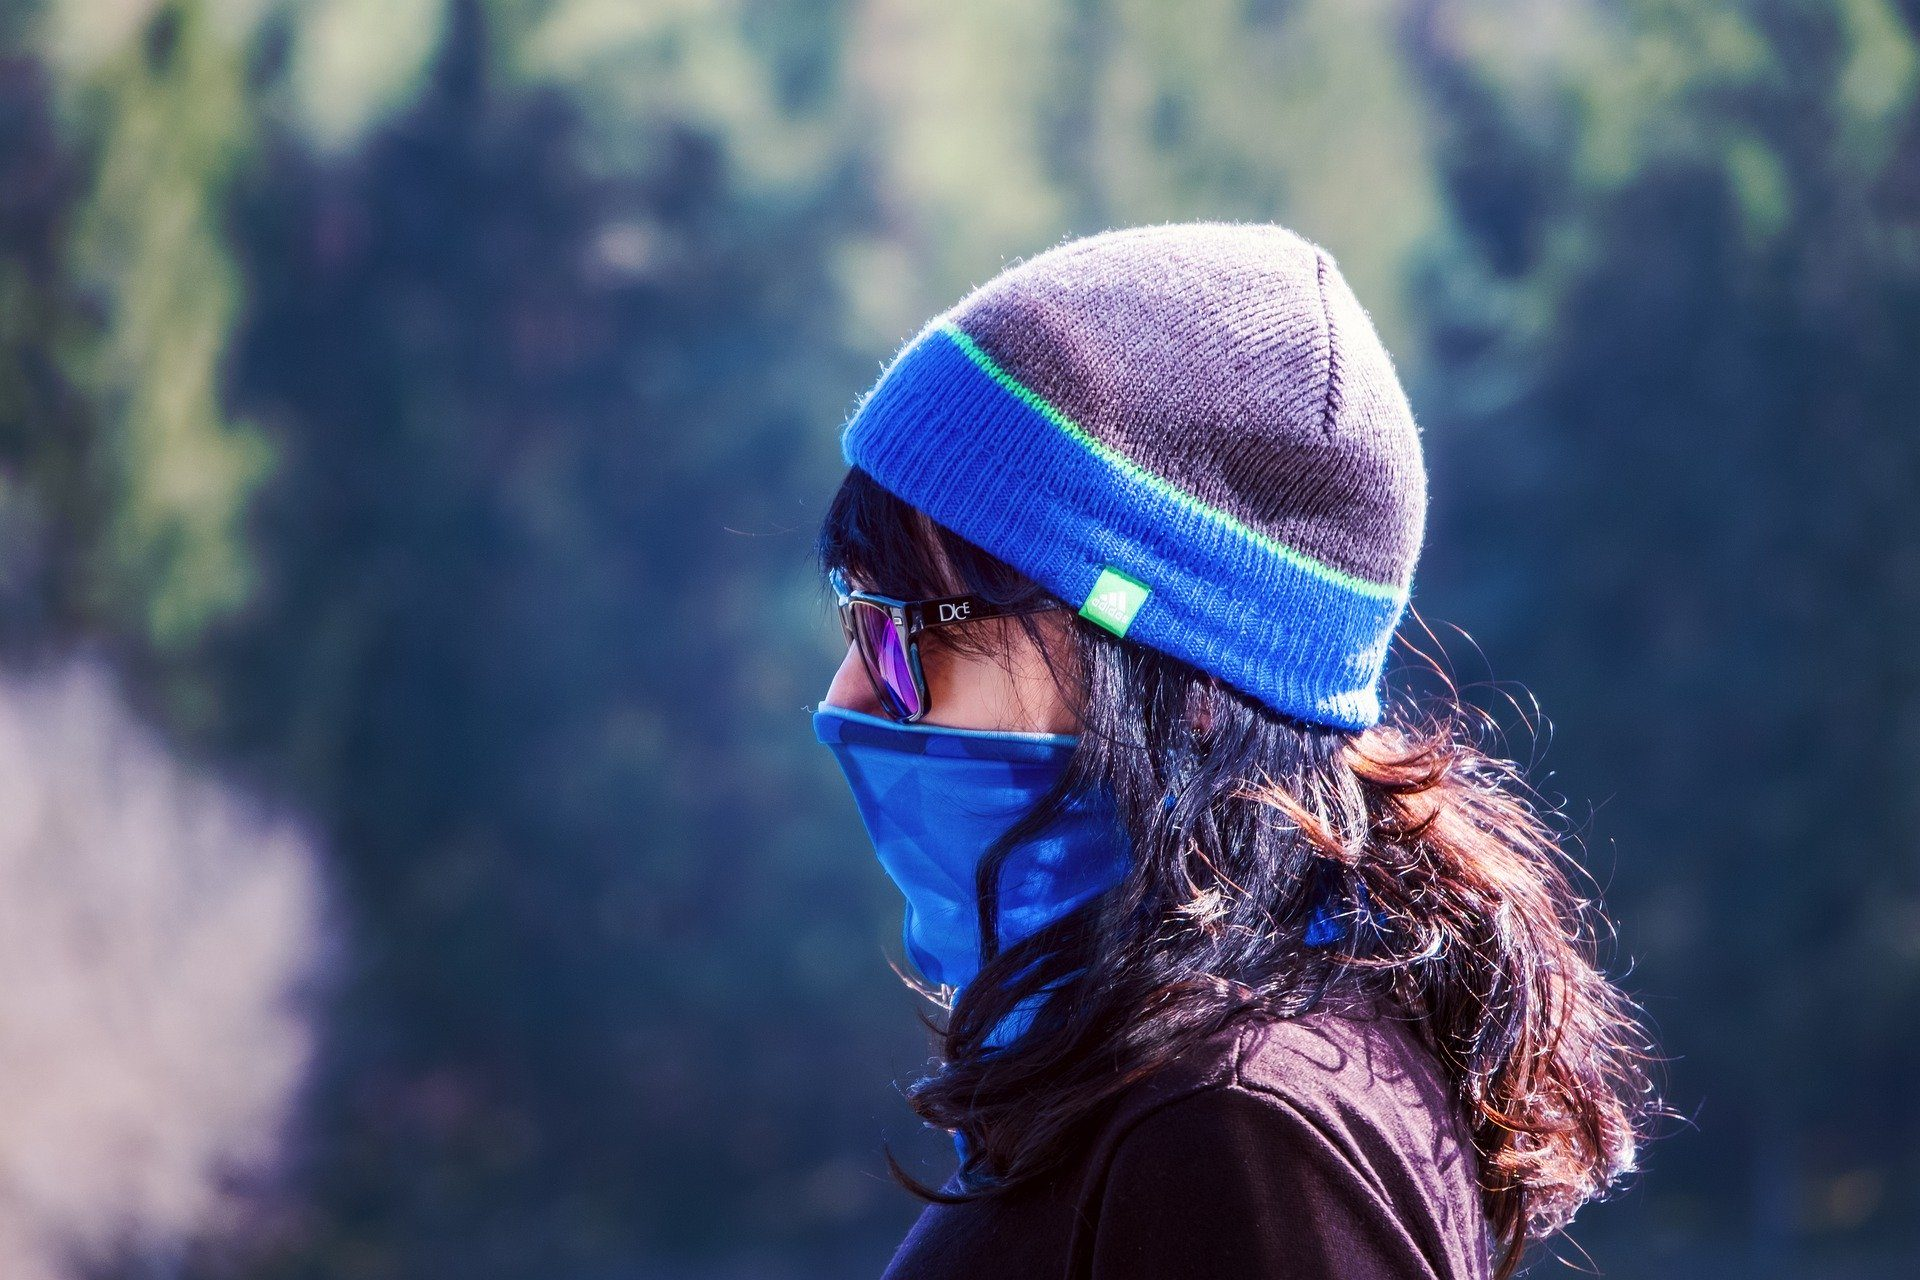 Lady outdoors wearing a protective facemask during the Coronavisu pandemic